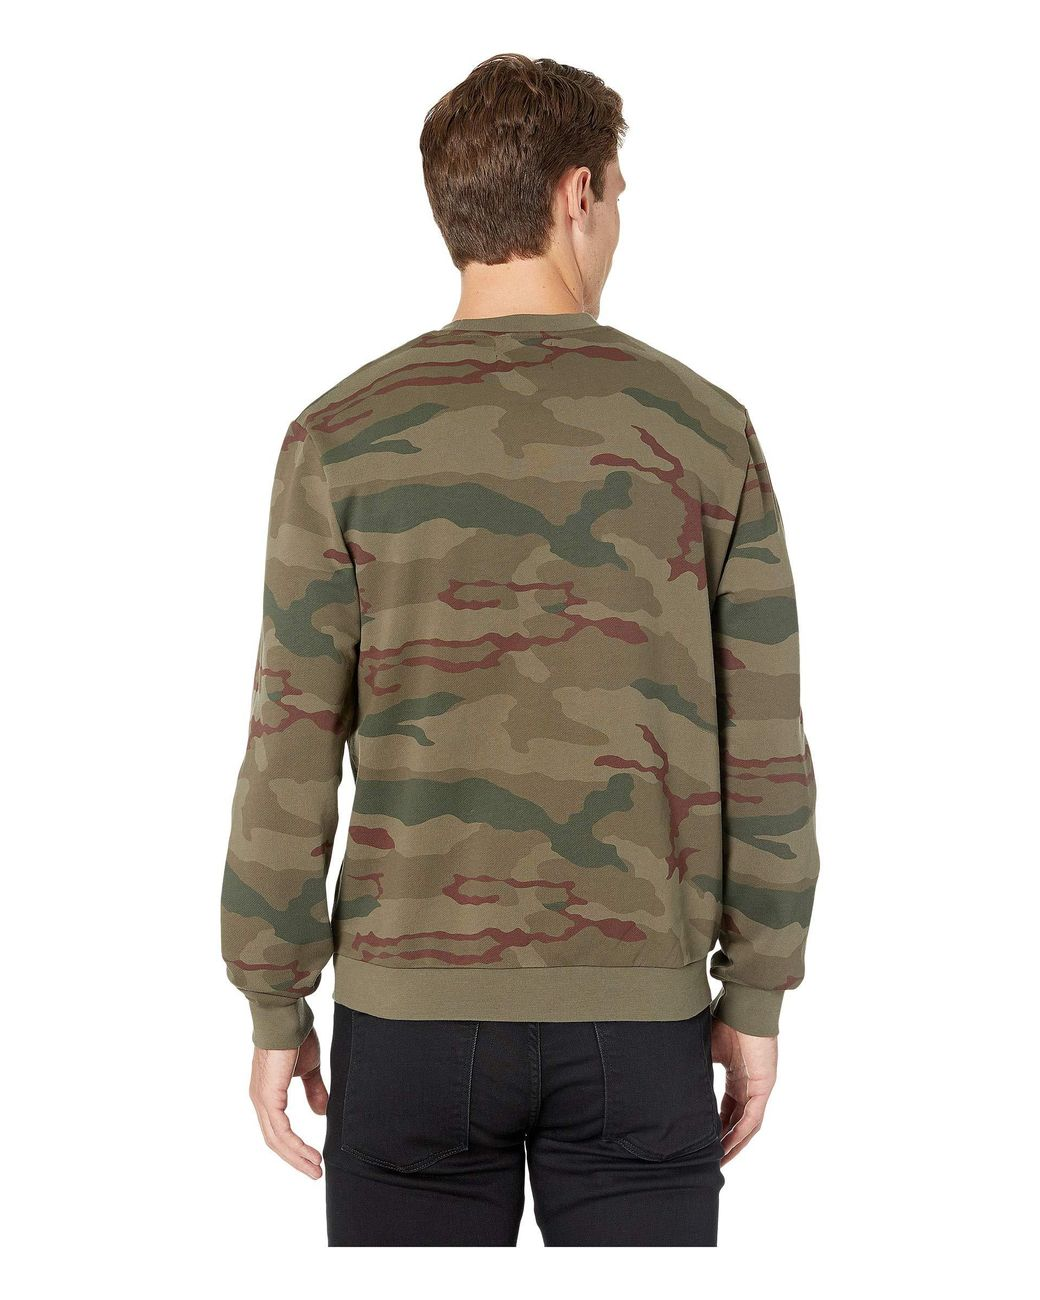 e5b0d6d74 Fred Perry Camouflage Sweatshirt (iris Tundra Camo) Men s Clothing in Green  for Men - Lyst